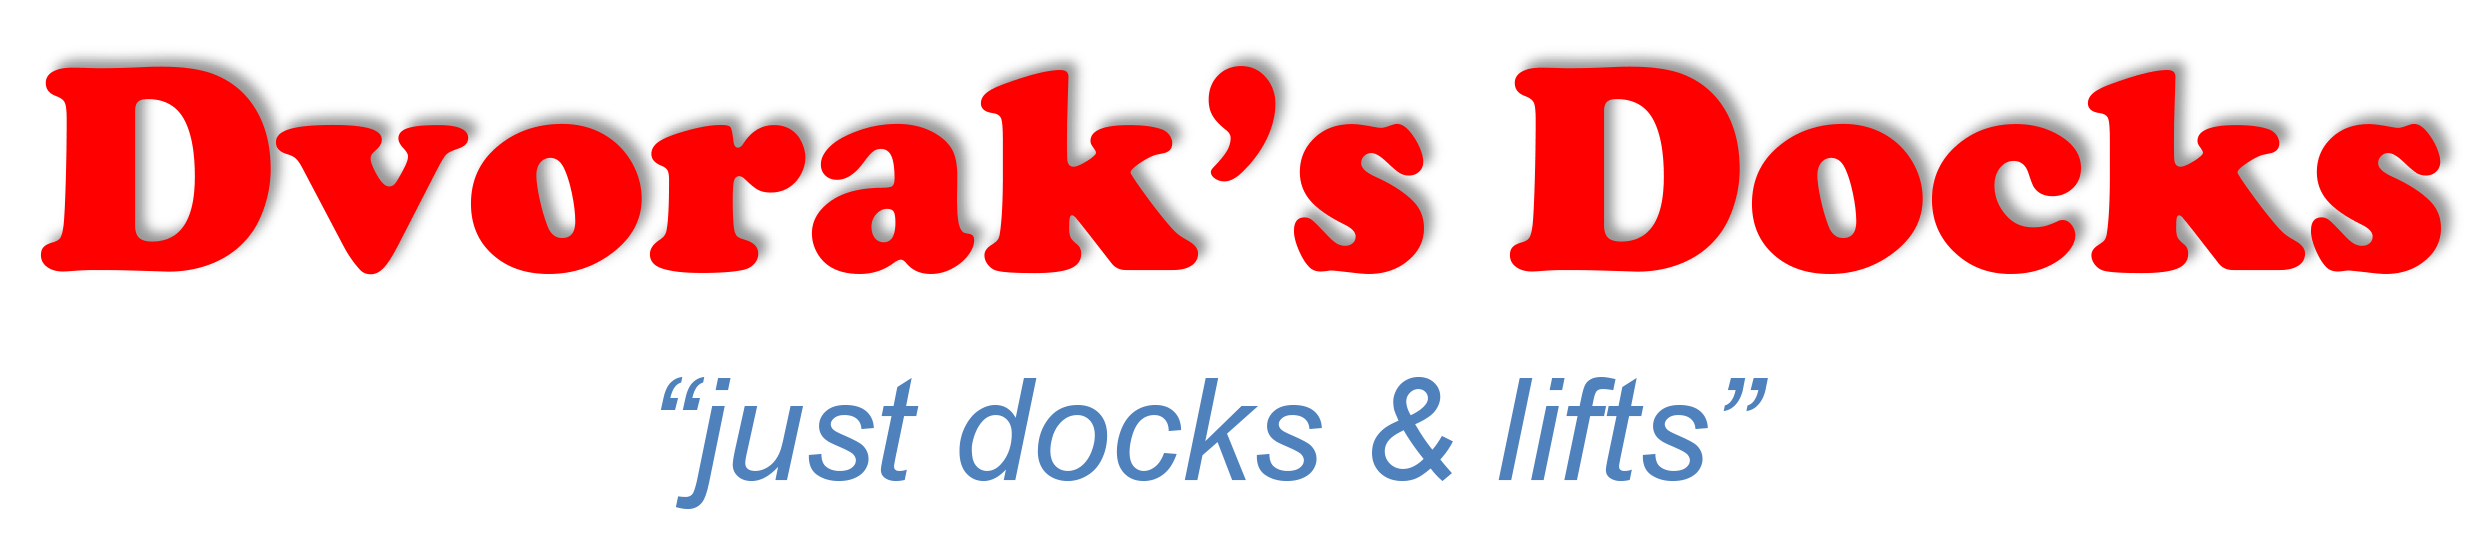 Company logo for 'Dvorak's Docks - Elcho'.